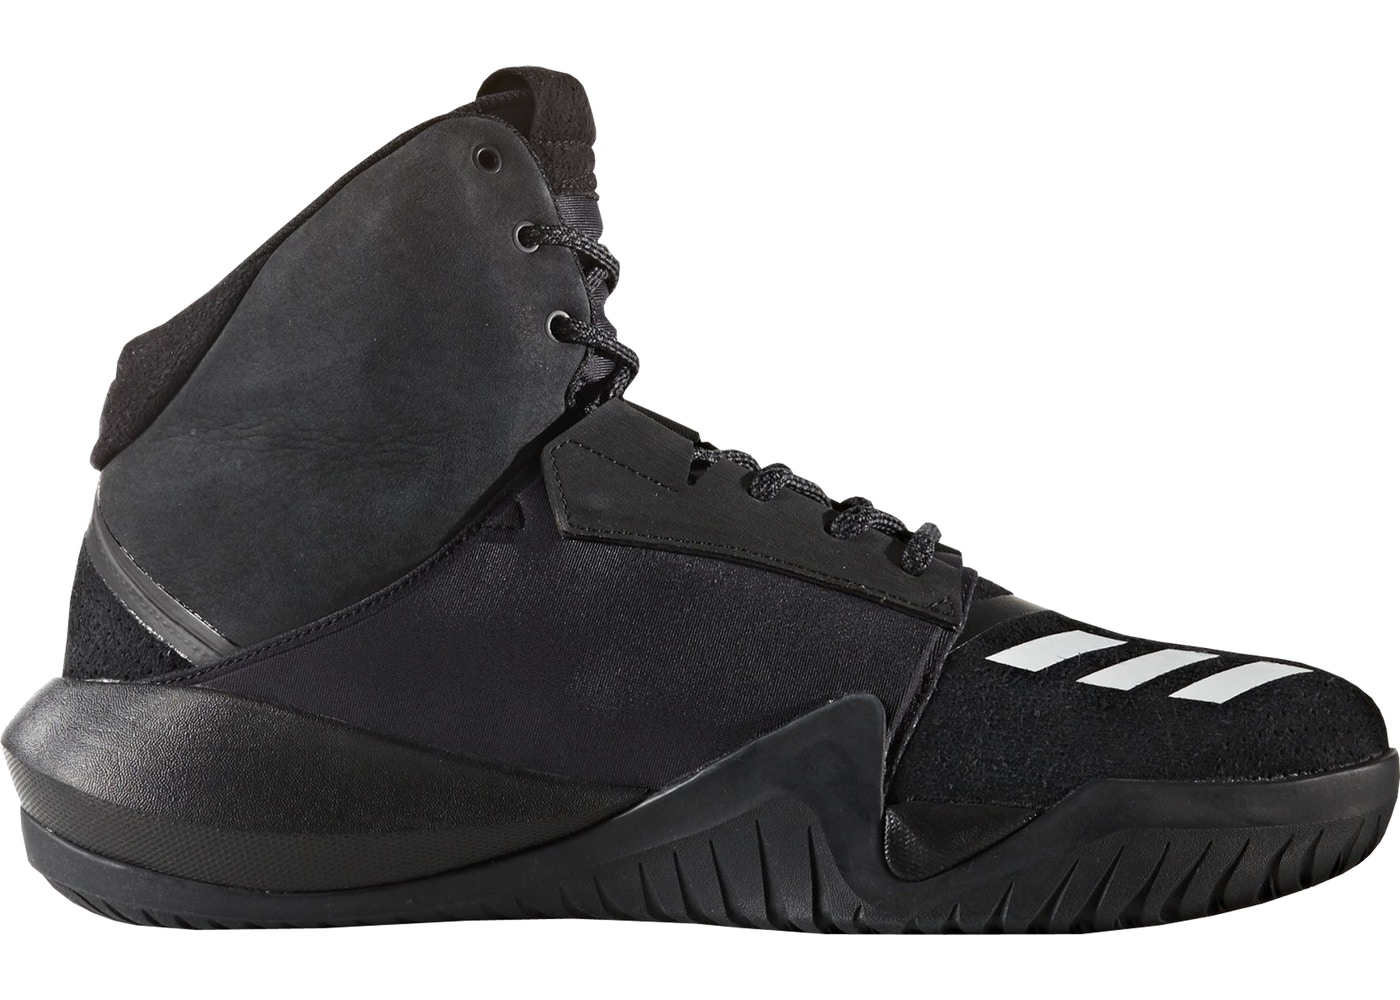 wholesale dealer edc1a 17375 adidas Crazy Team 2017 Day One Black